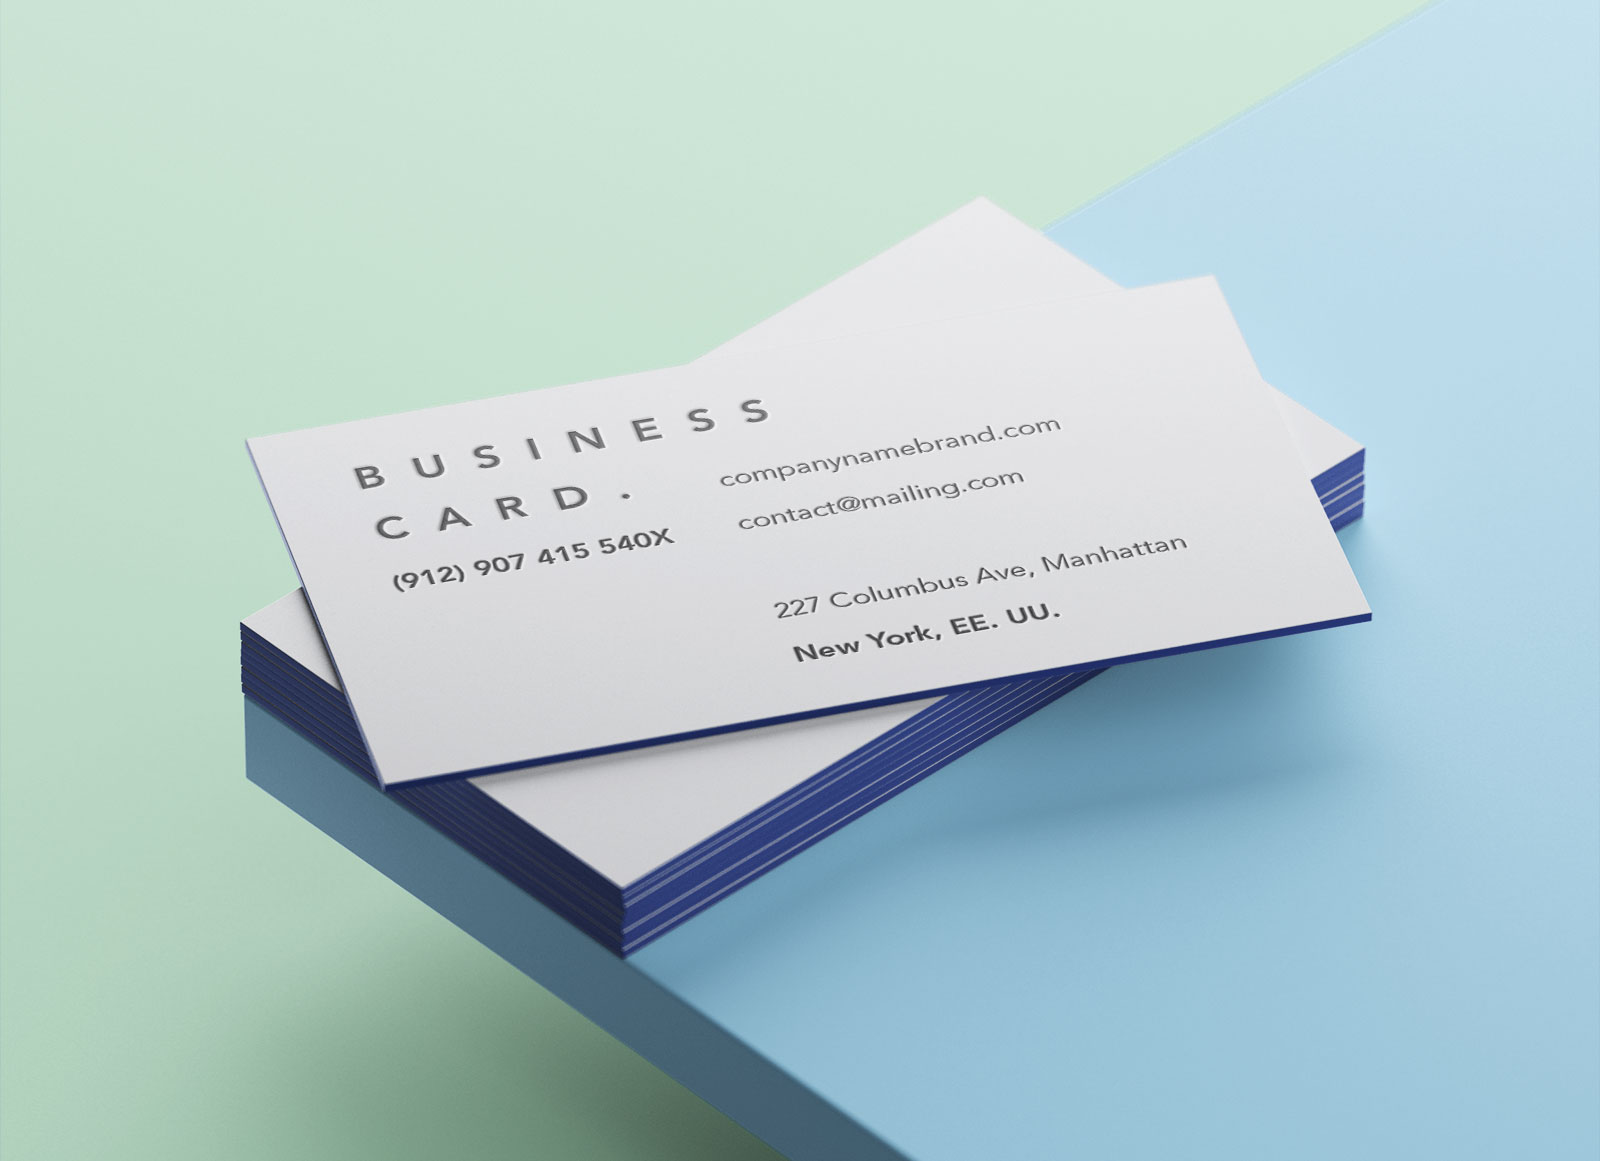 Free-Colored-Edge-Business-Card-Mockup-PSD-2